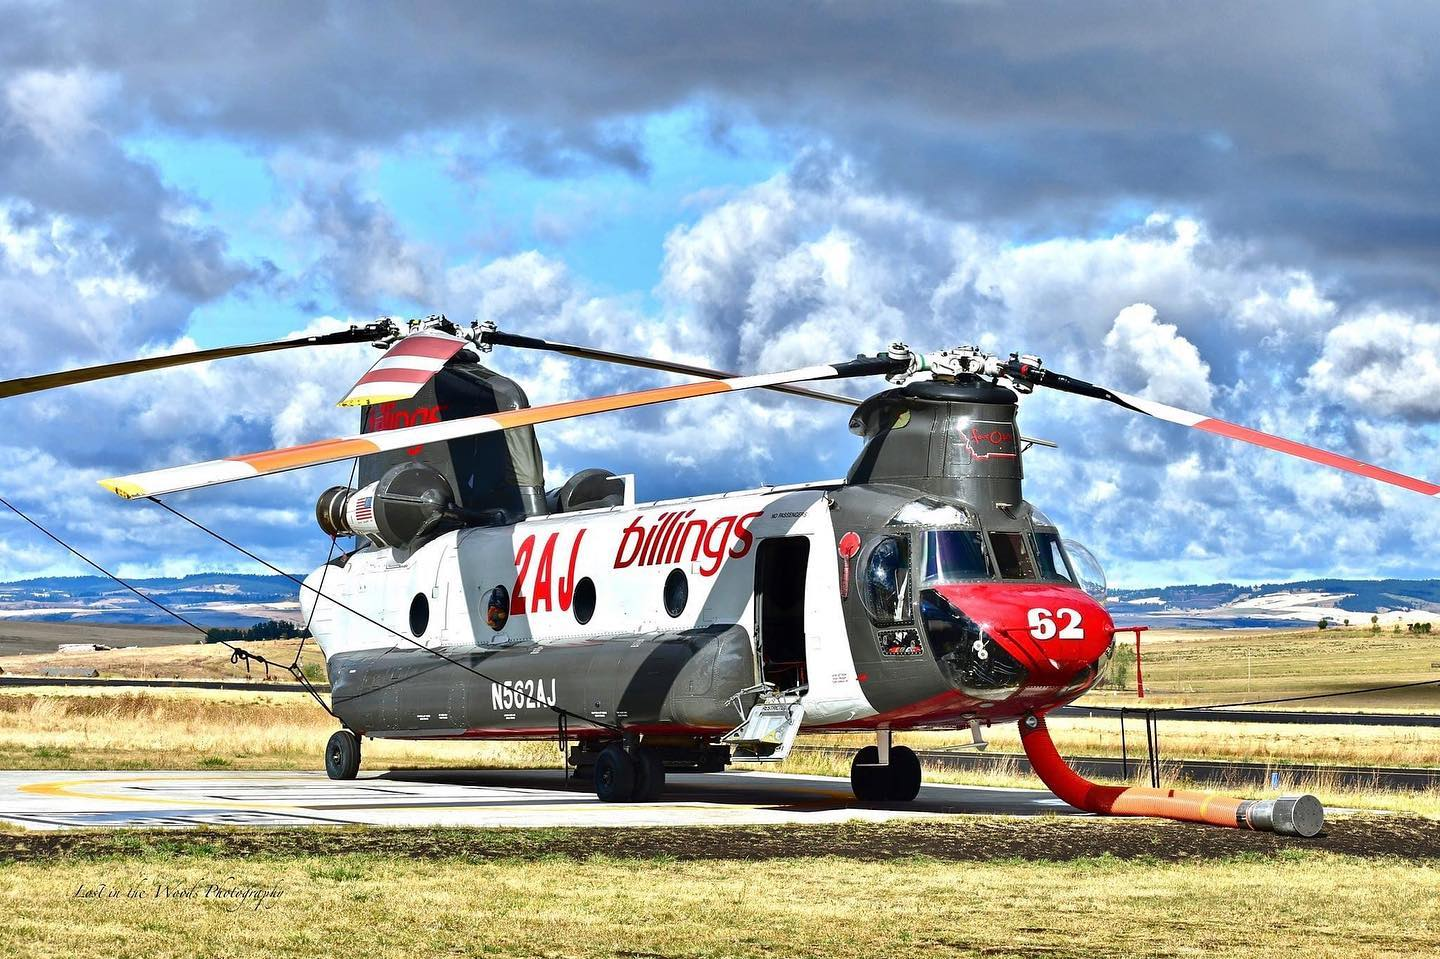 Chinook Helicopter For Sale: How To Buy A CH-47